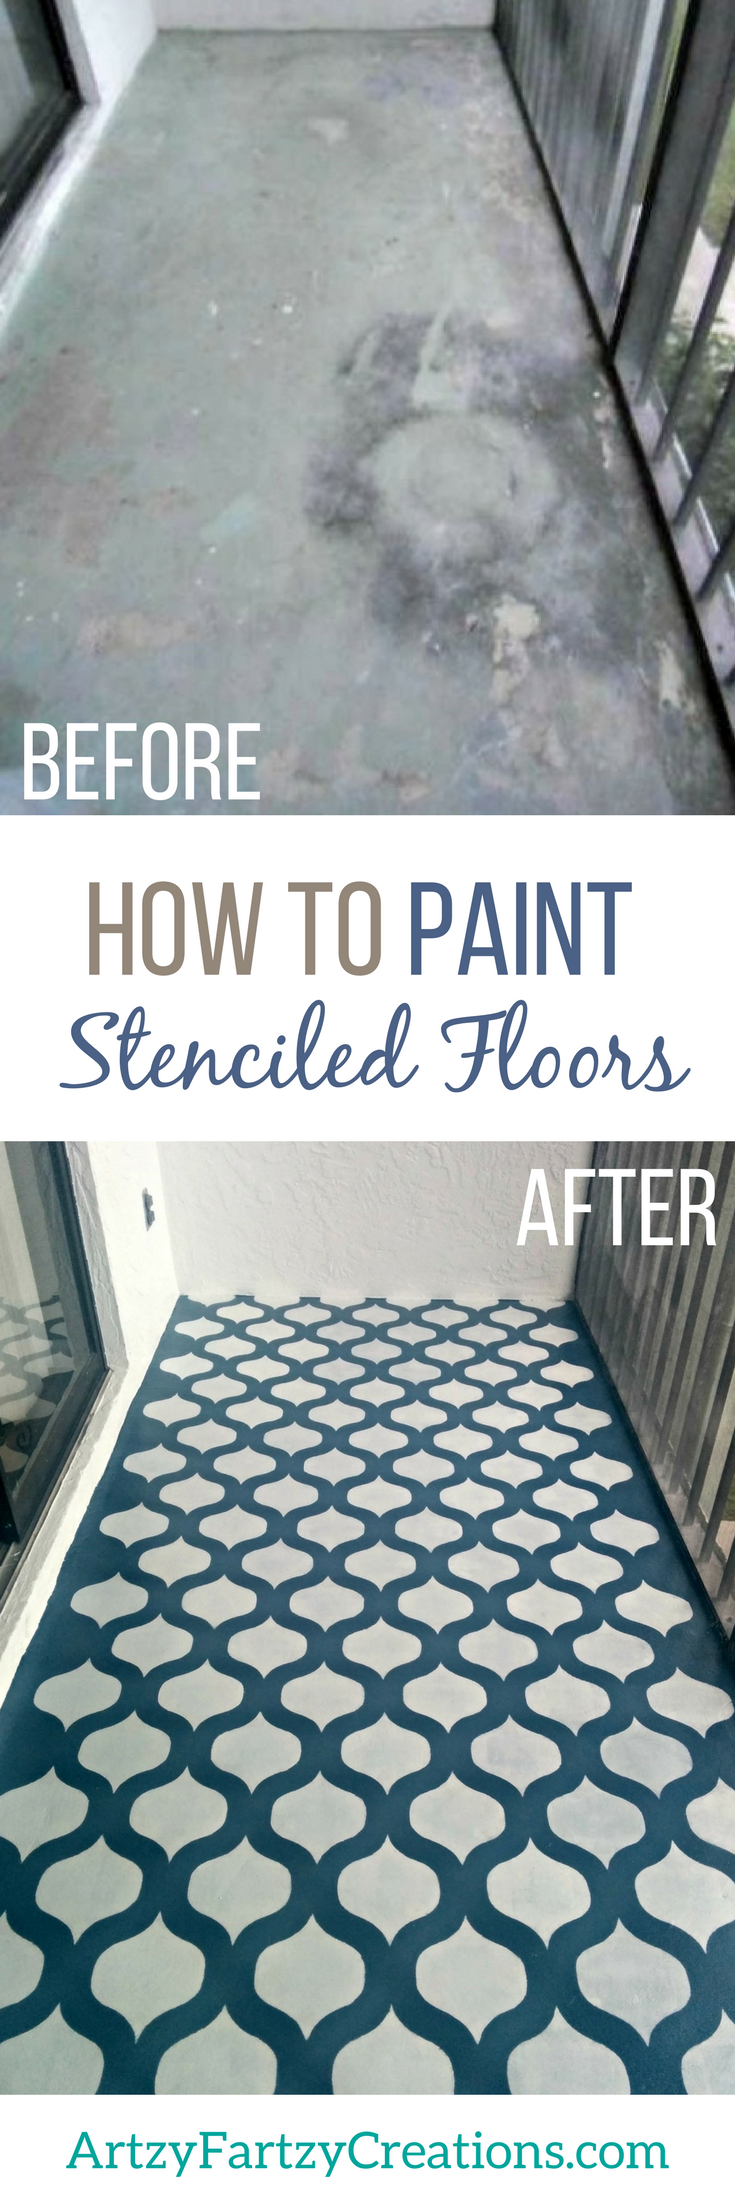 How To Paint A Stenciled Floor On Concrete Cheryl Phan